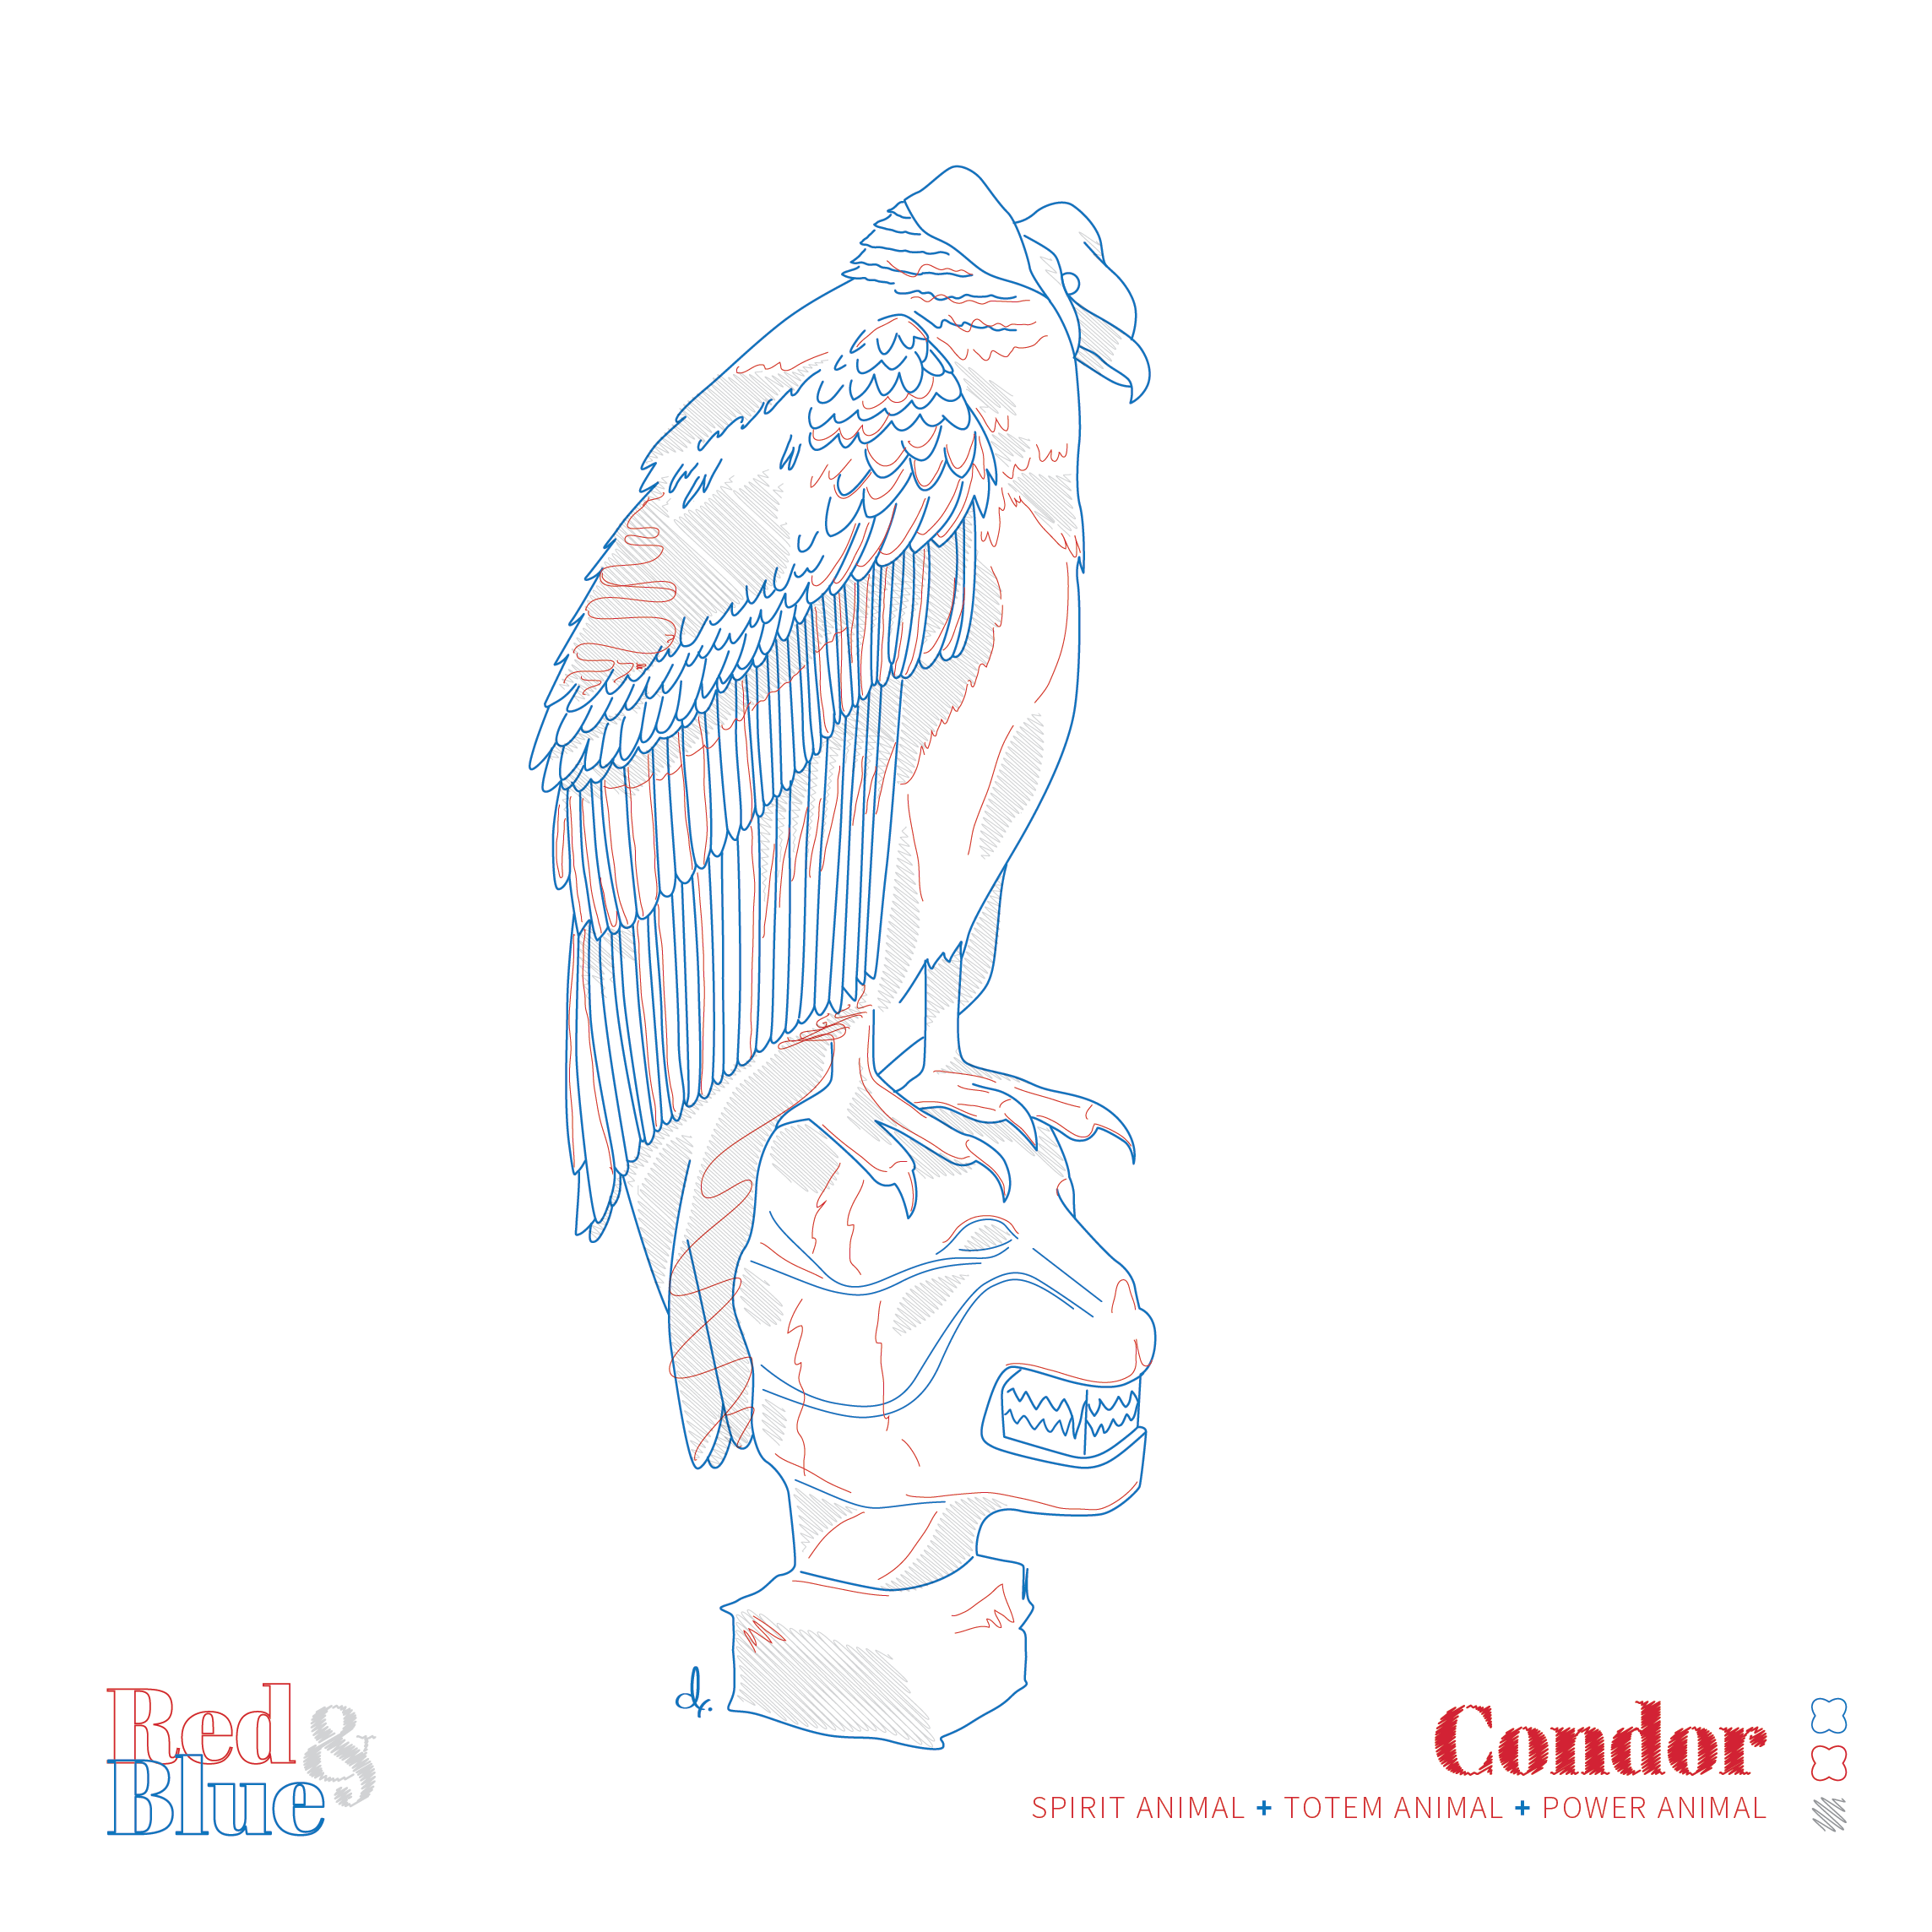 Condor Red and Blue Symbolism and Meaning